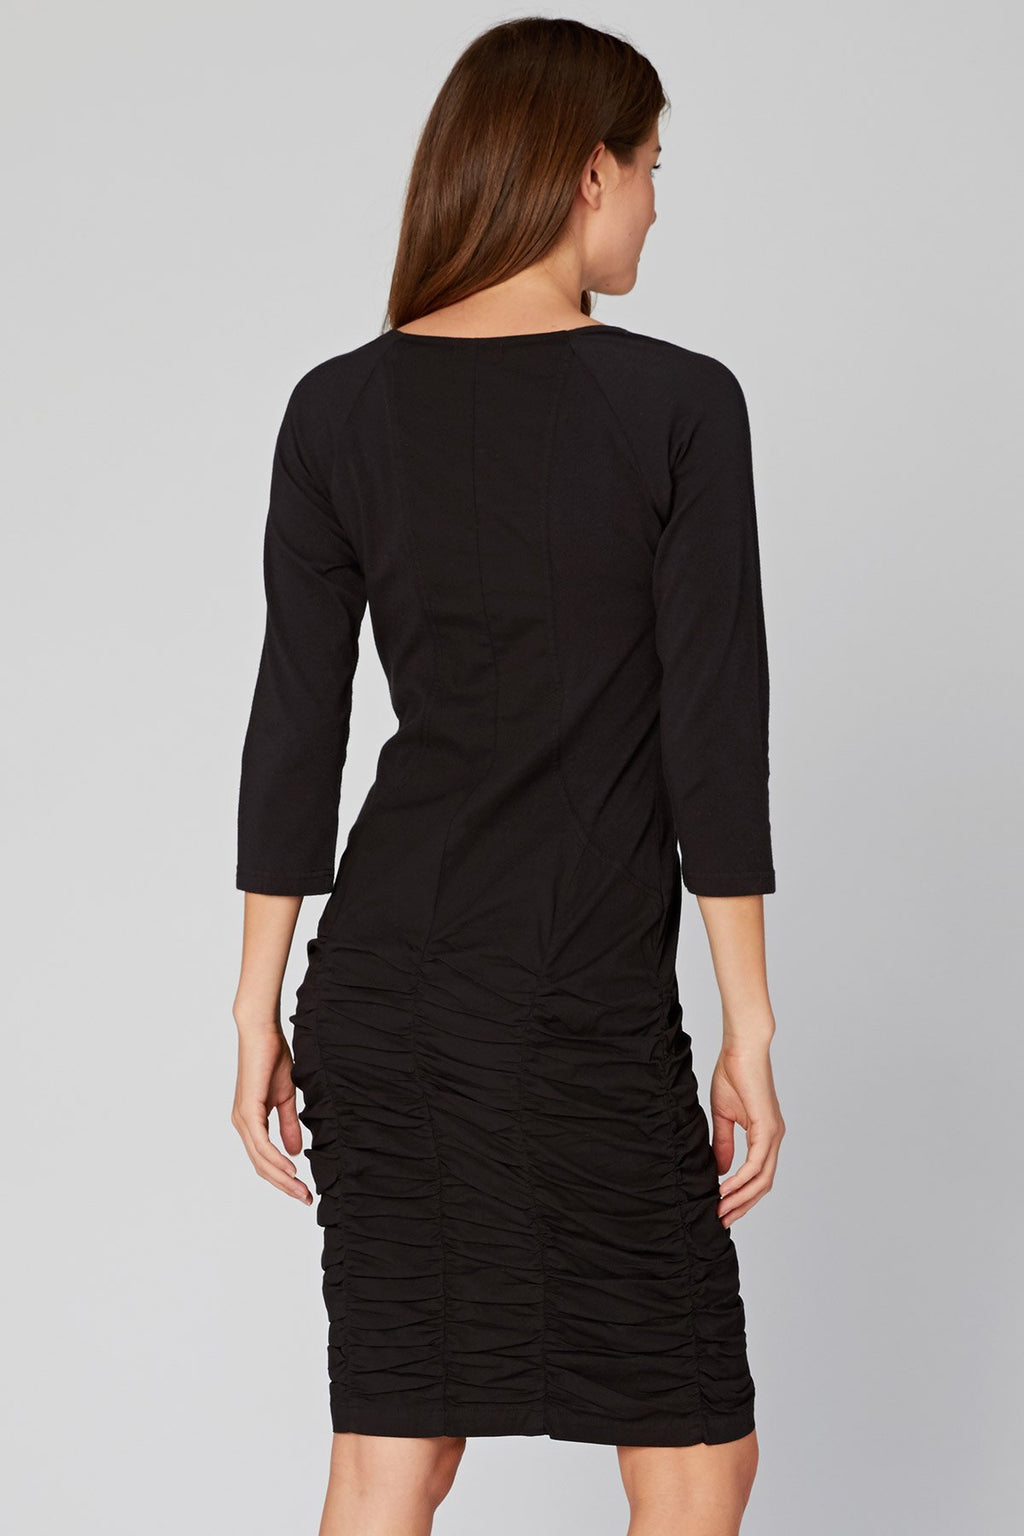 3/4 Sleeve Ruched Skirt Dress in Black